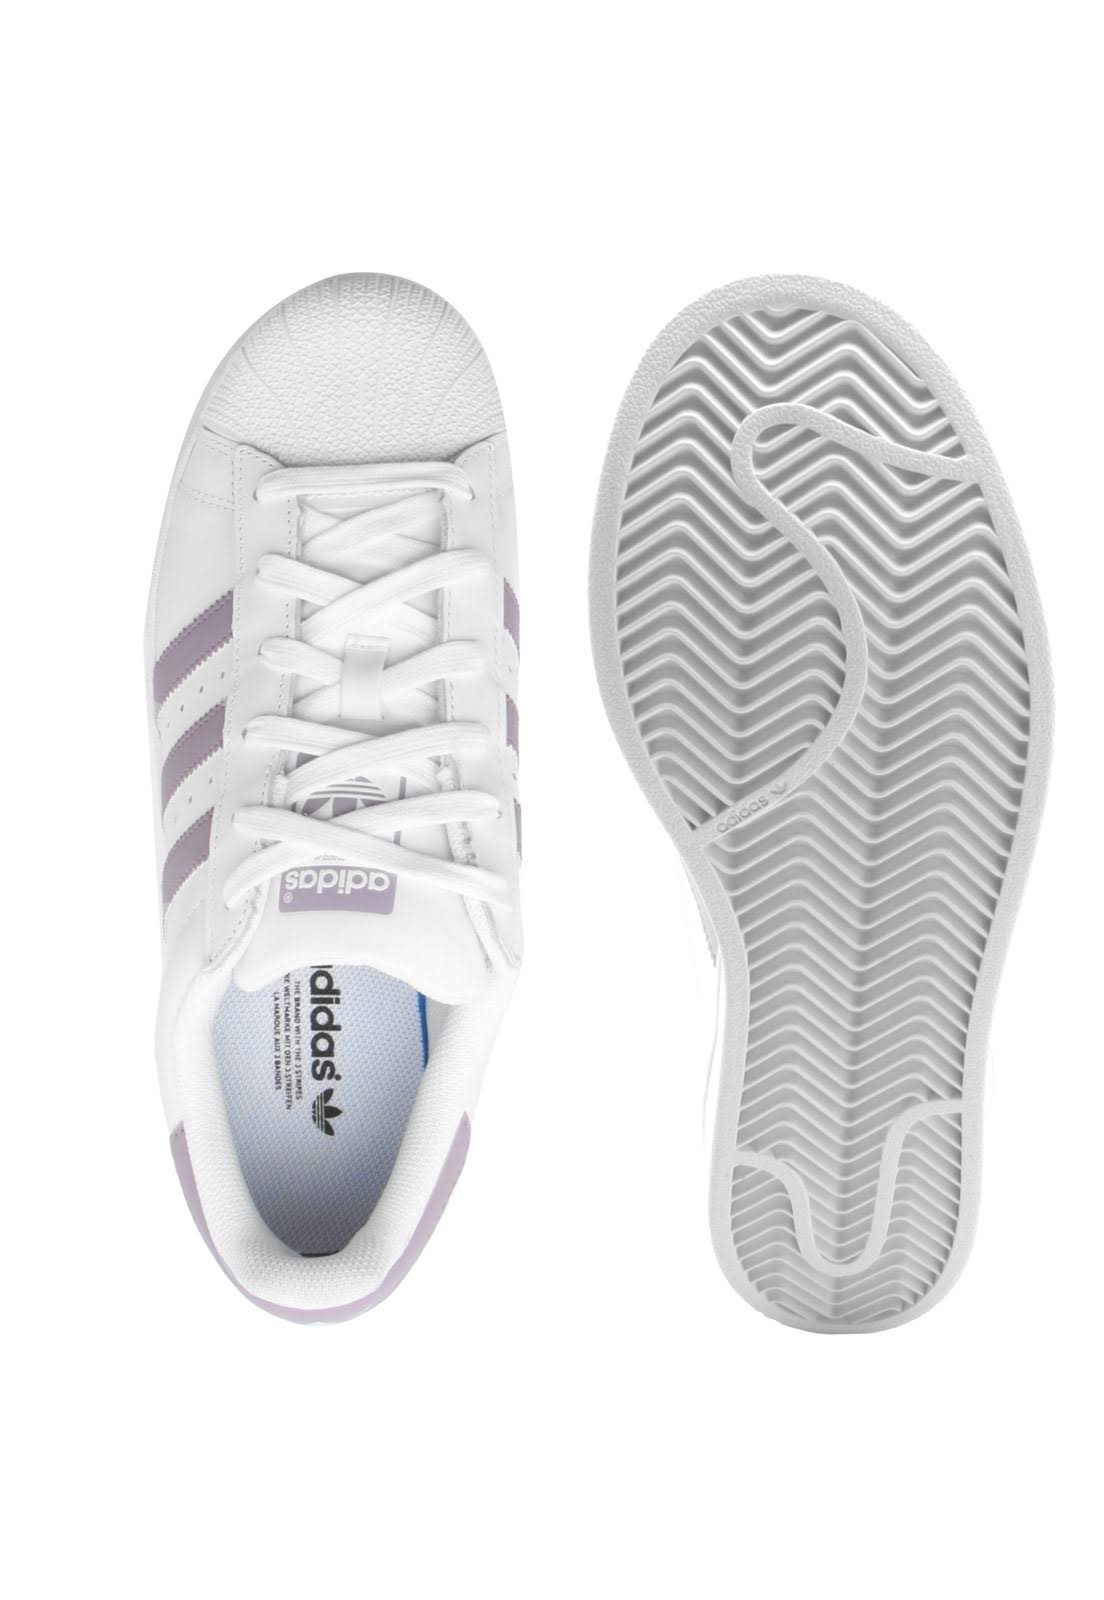 Tennis WhiteDames Lifestyle Superstar Adidas Tennis Superstar Superstar WhiteDames Adidas Adidas Tennis Lifestyle QoexEdBWrC